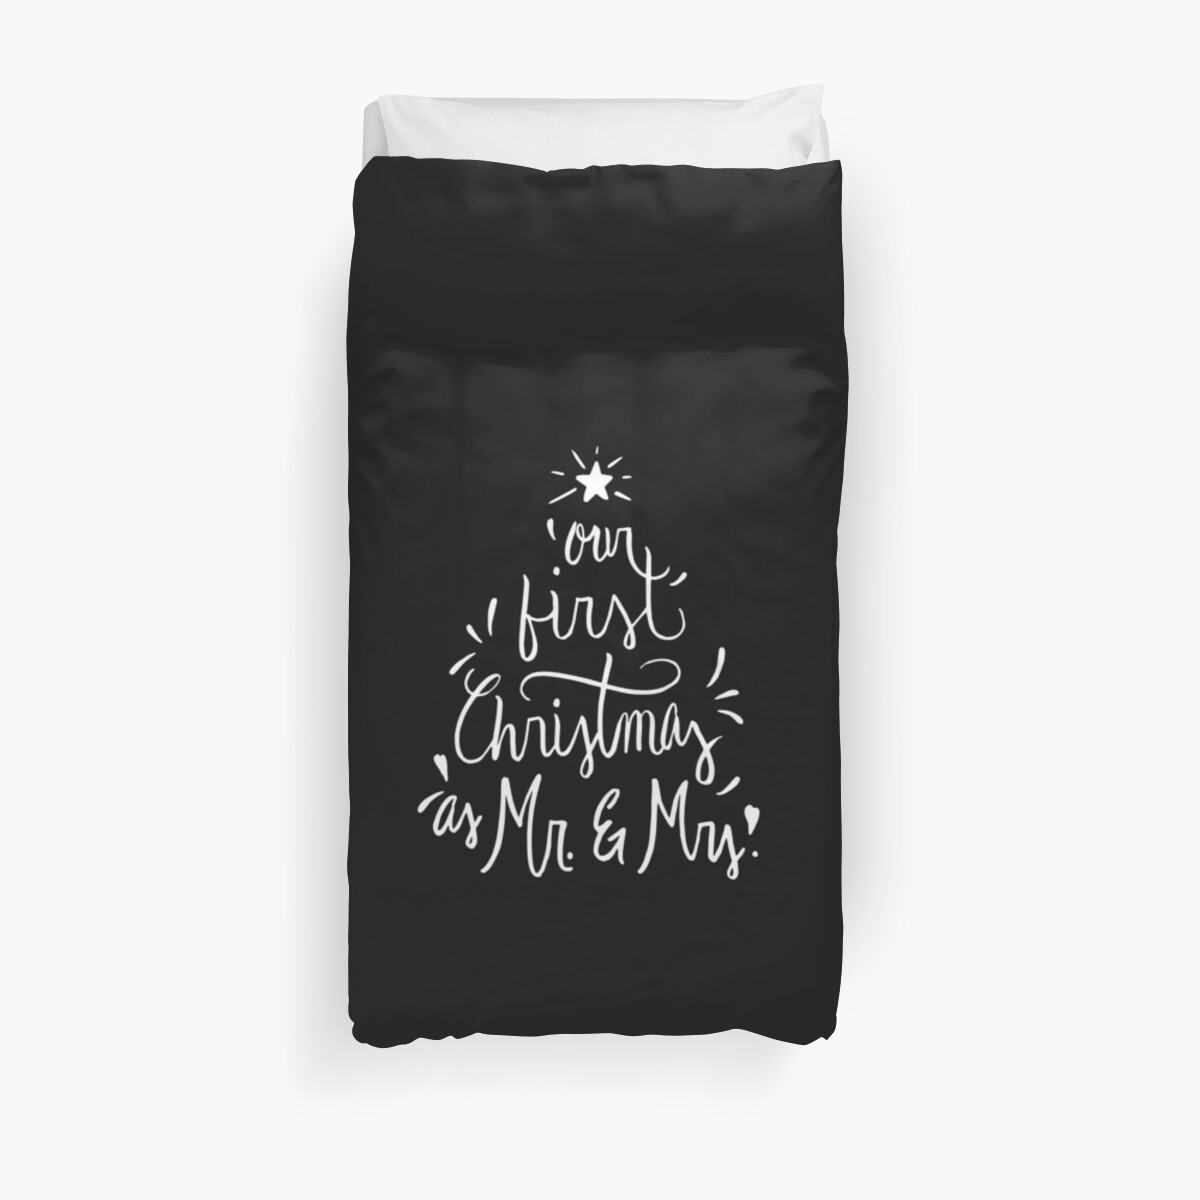 'Our First Christmas as Mr. & Mrs. Just Married' Duvet Cover by BullQuacky